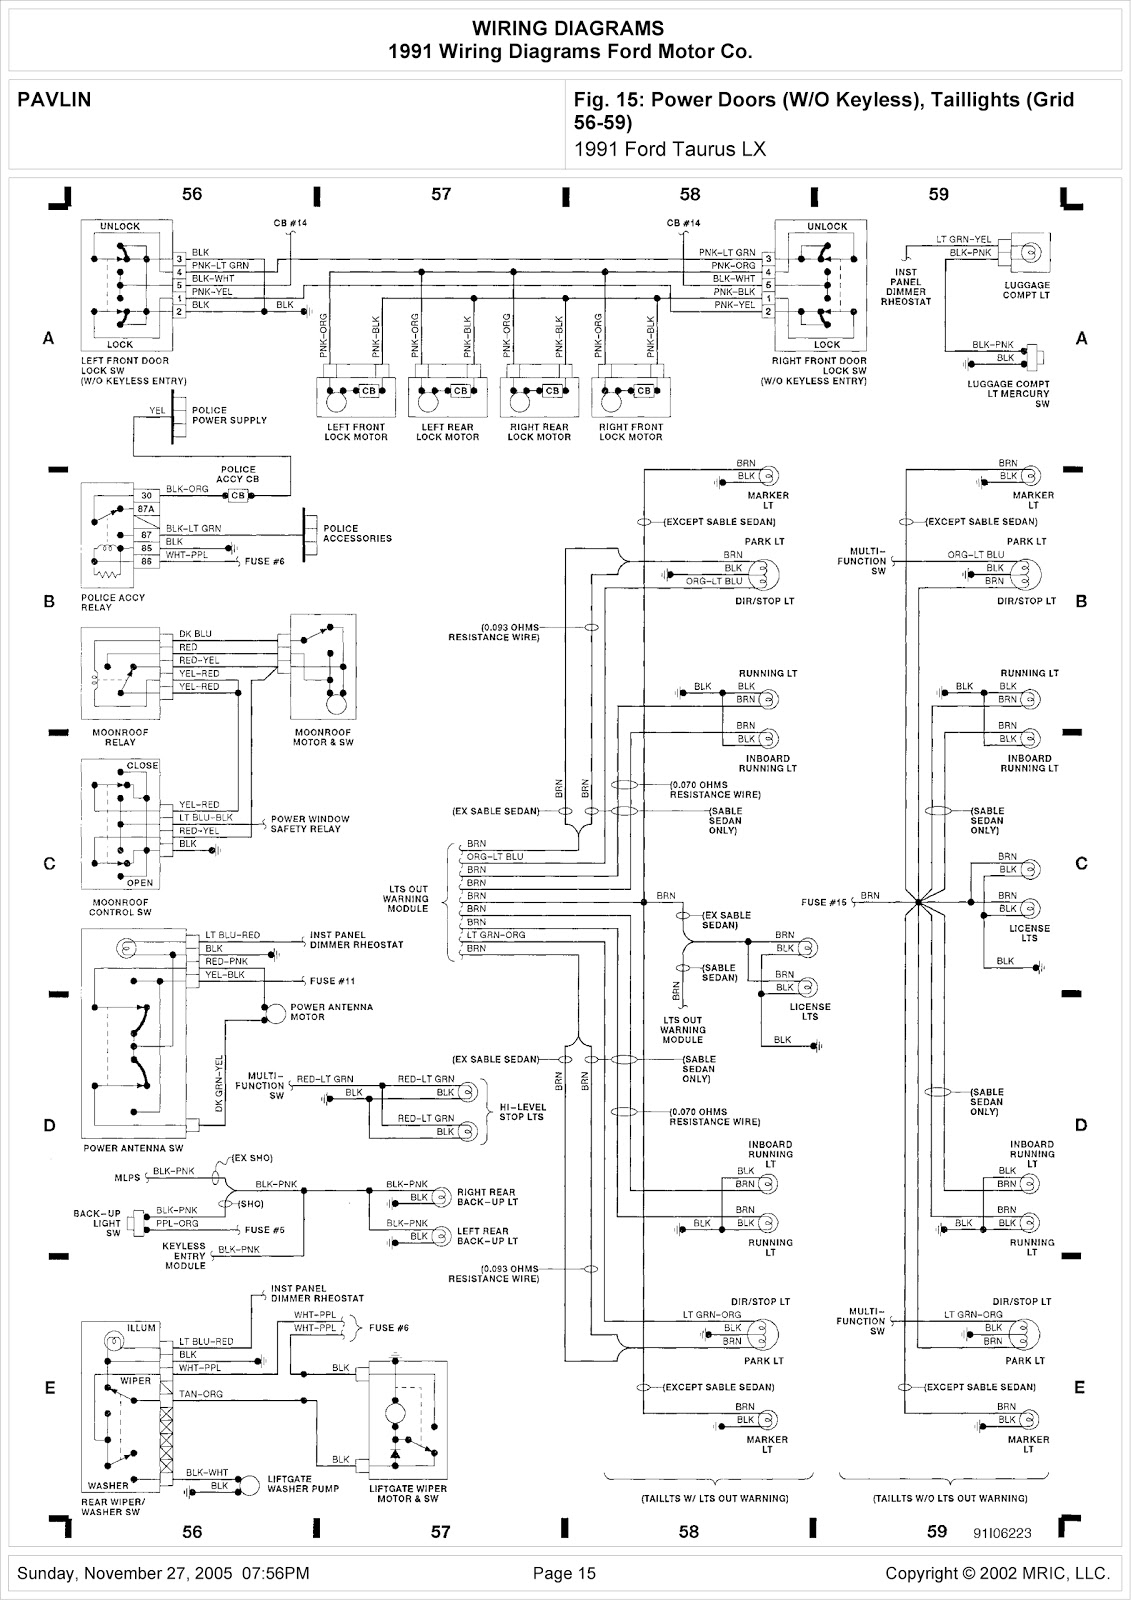 2002 ford taurus charging system wiring diagram 1991 ford taurus lx system wiring diagram for keyless entry #2